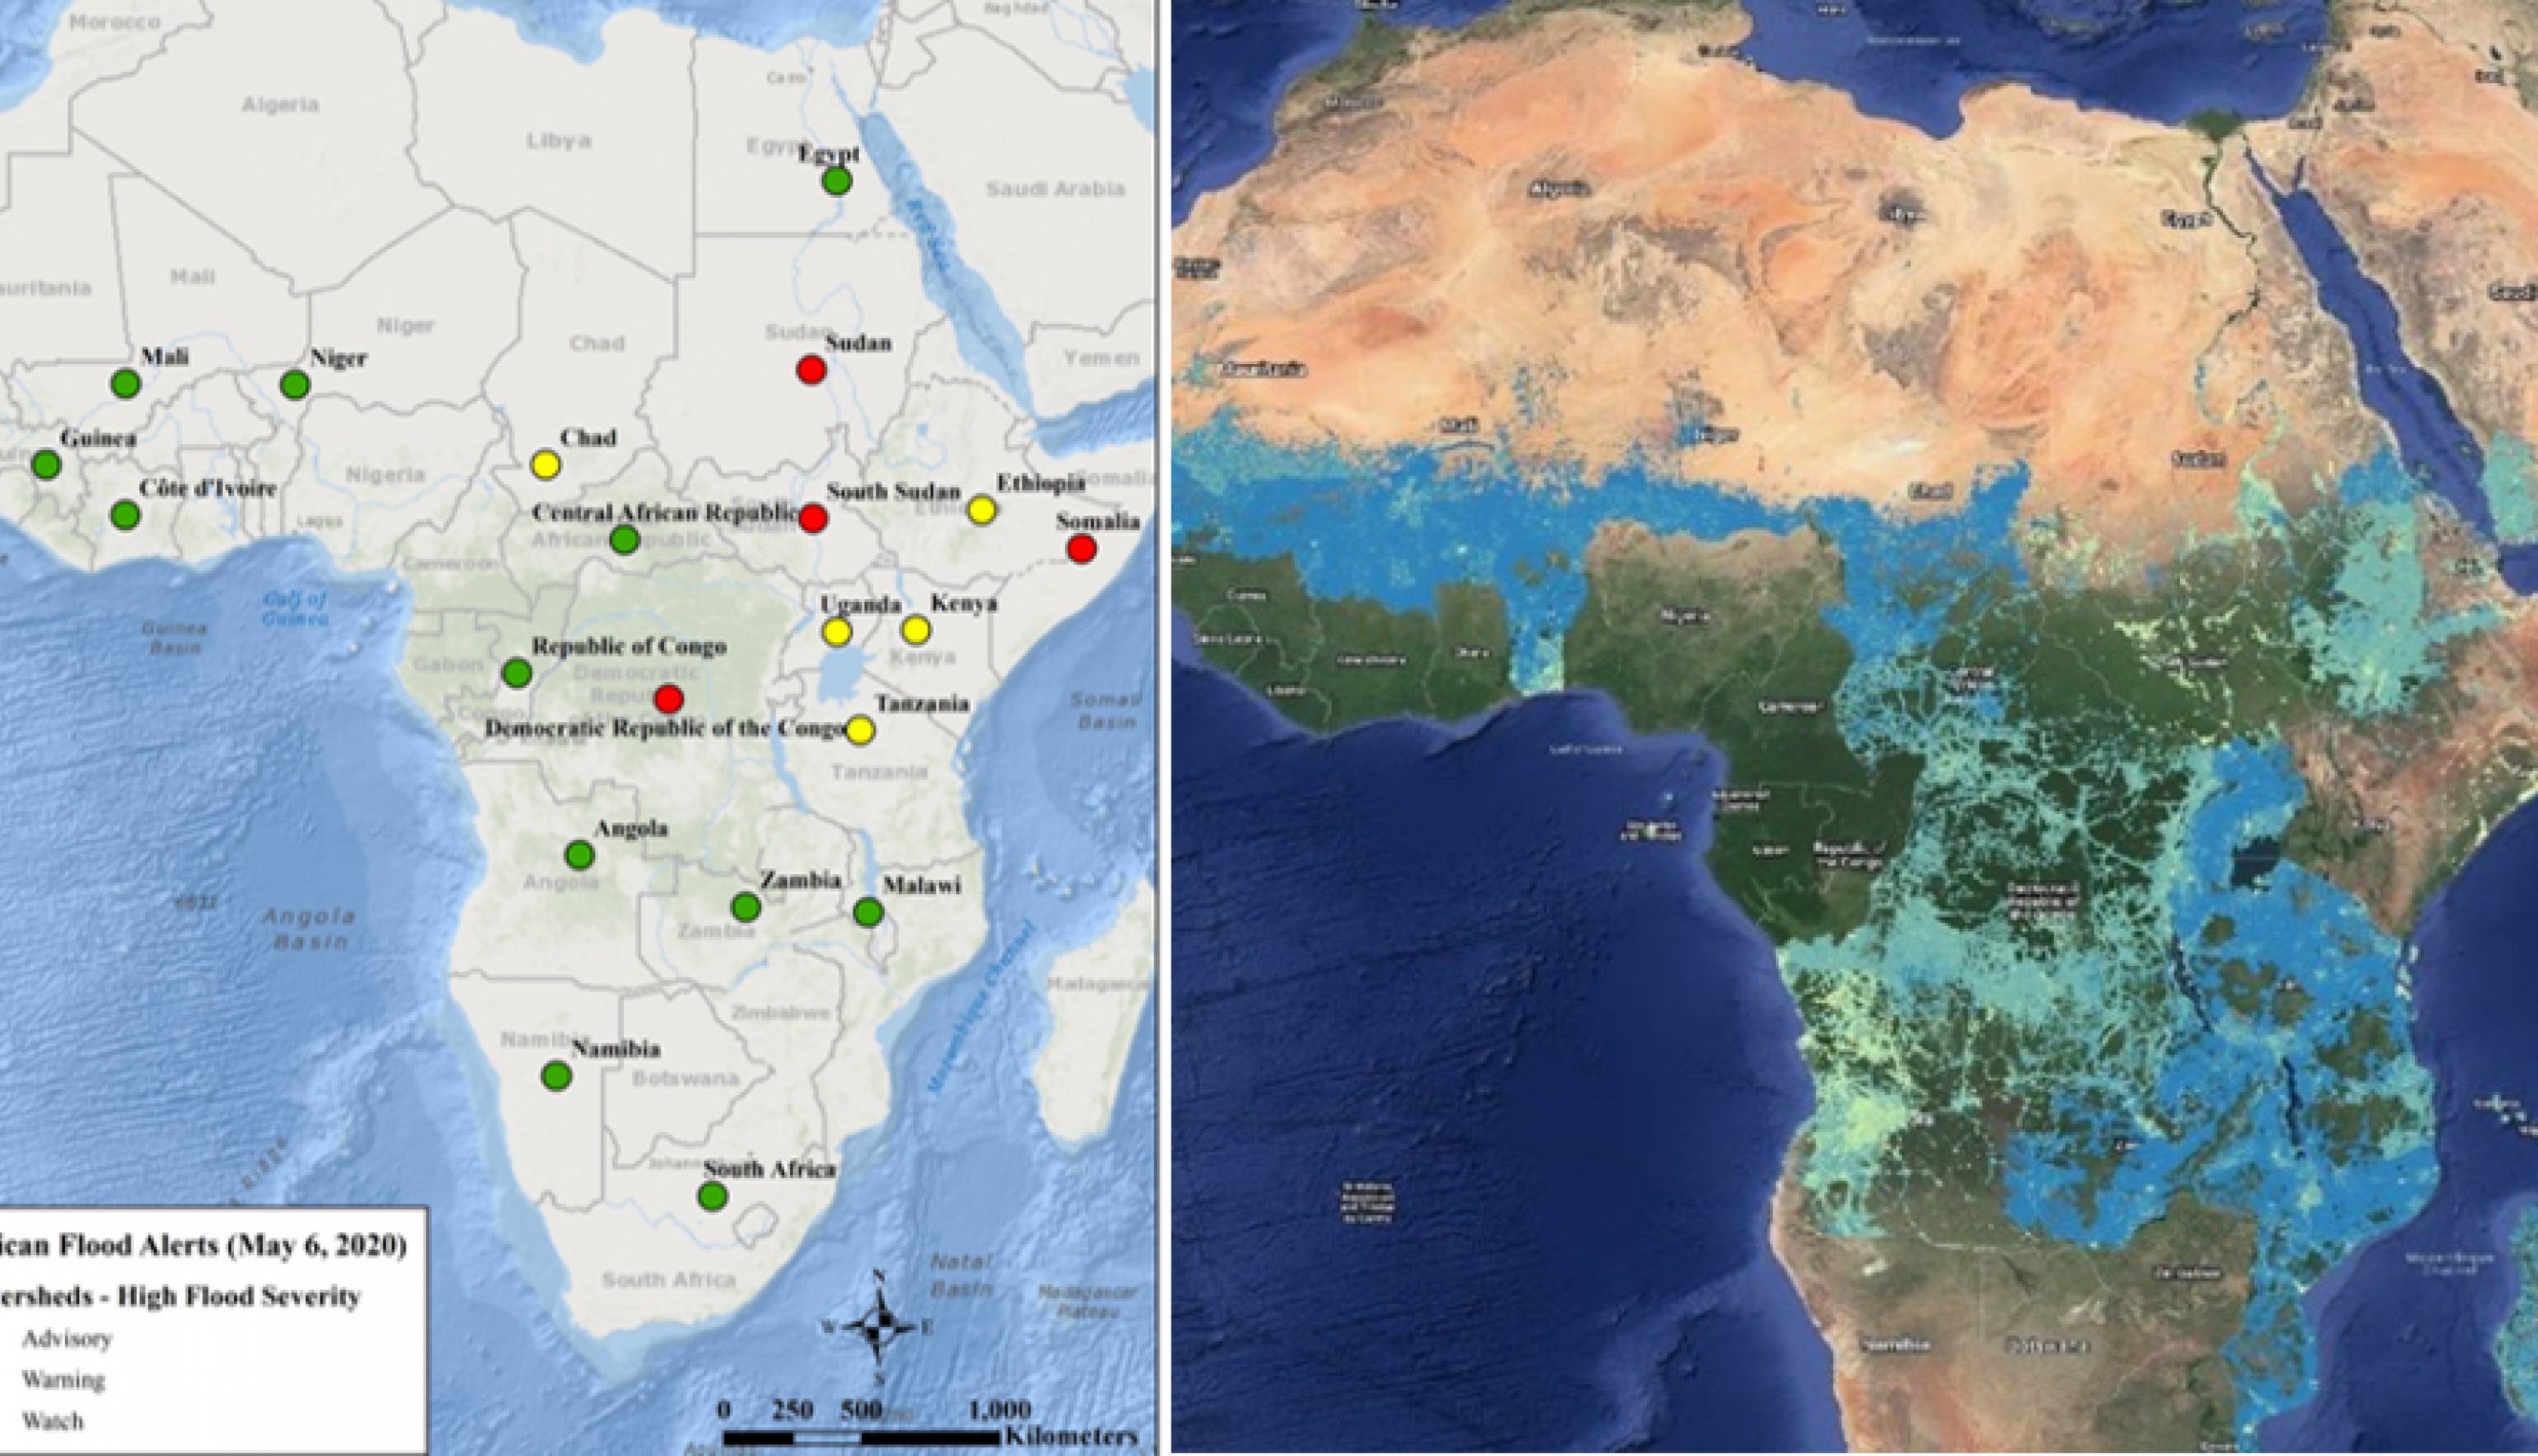 comparison of flood warnings with satellite flooding data over the African continent